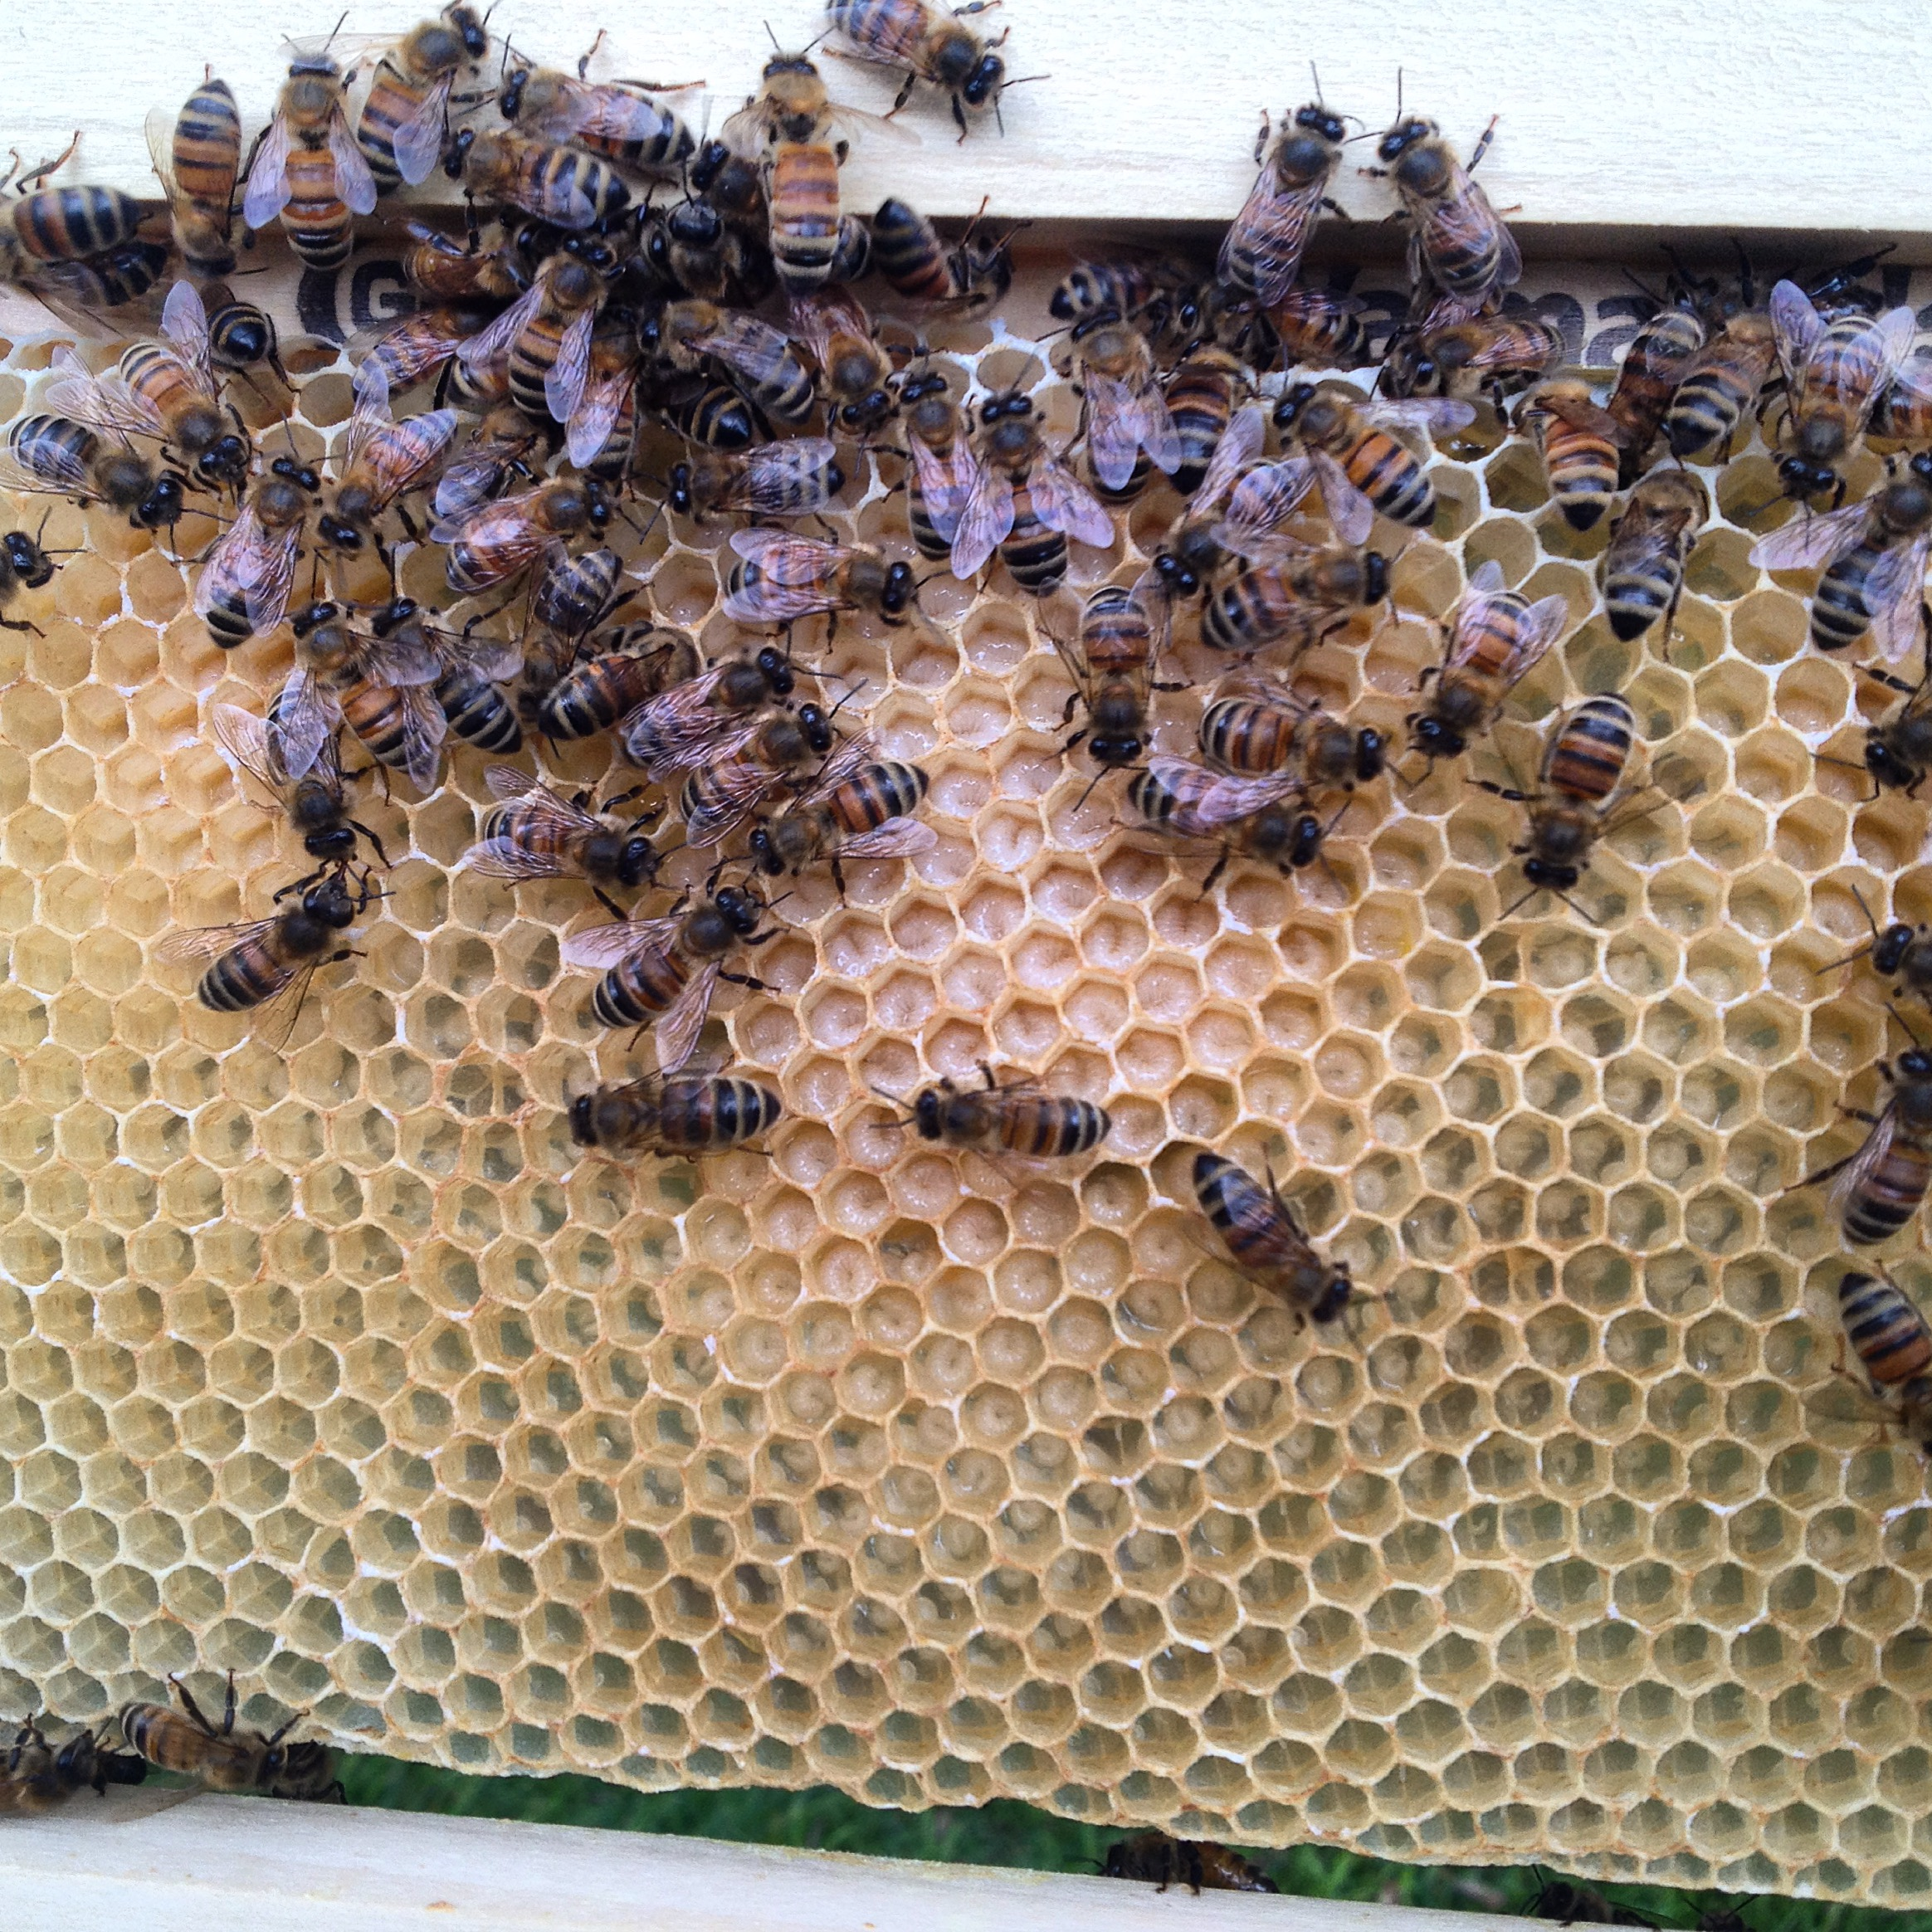 A frame of open (uncapped) brood, with eggs of the right age to be turned into a queen.